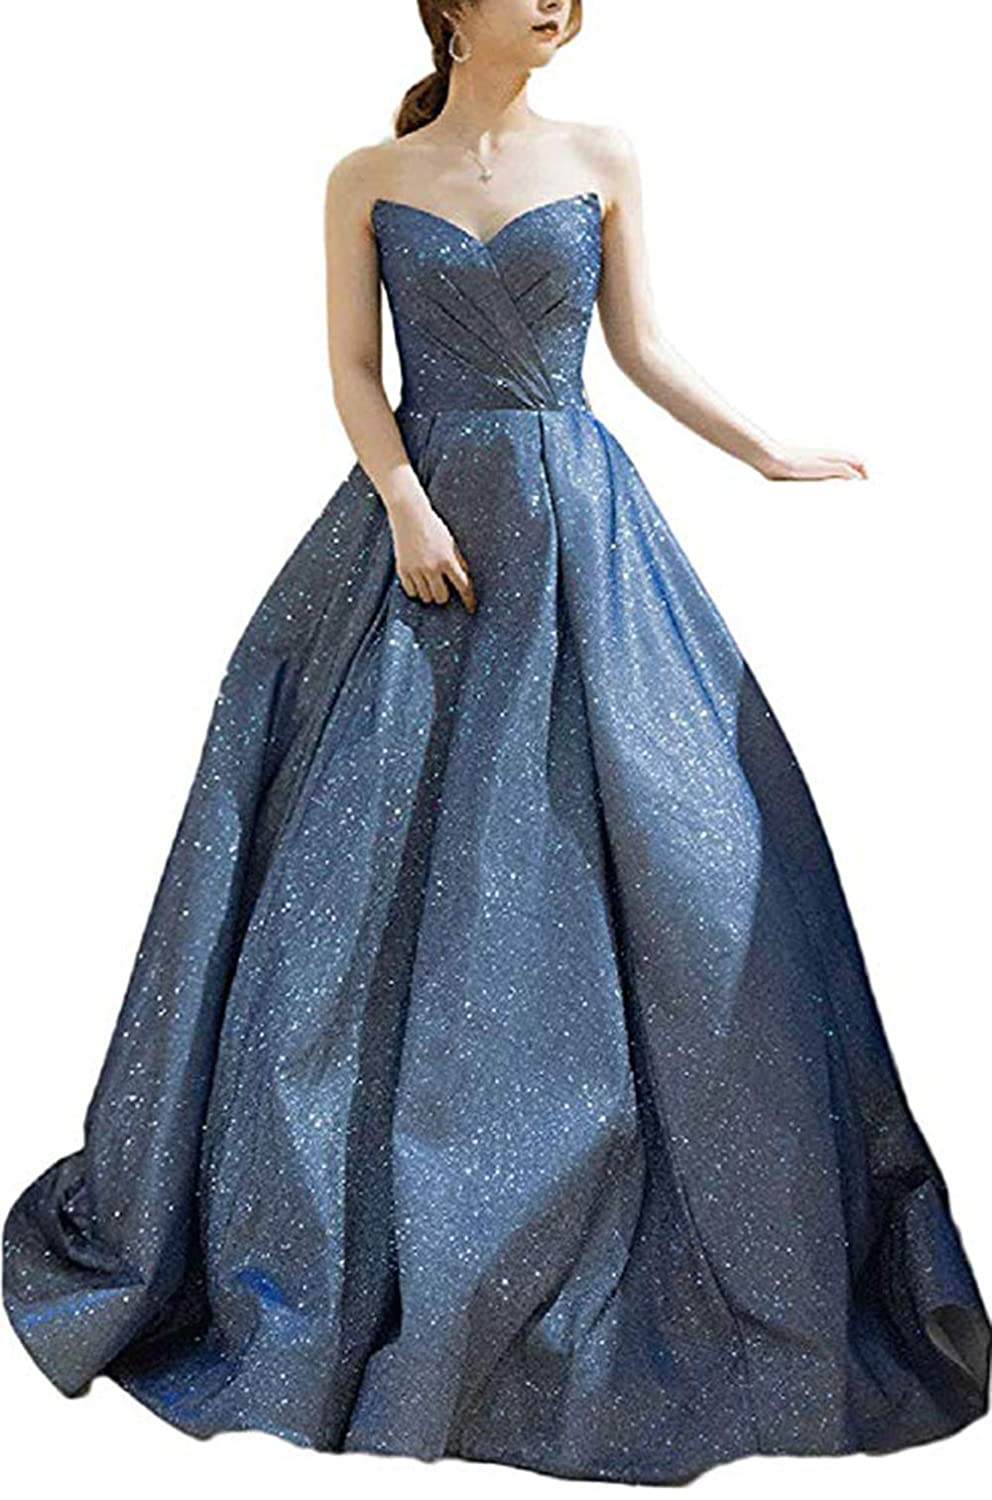 bluee Ri Yun Women's Glitter Jersey Sweetheart Prom Dresses Long 2019 Strapless Sparkly Formal Evening Gowns Wedding Party Dresses